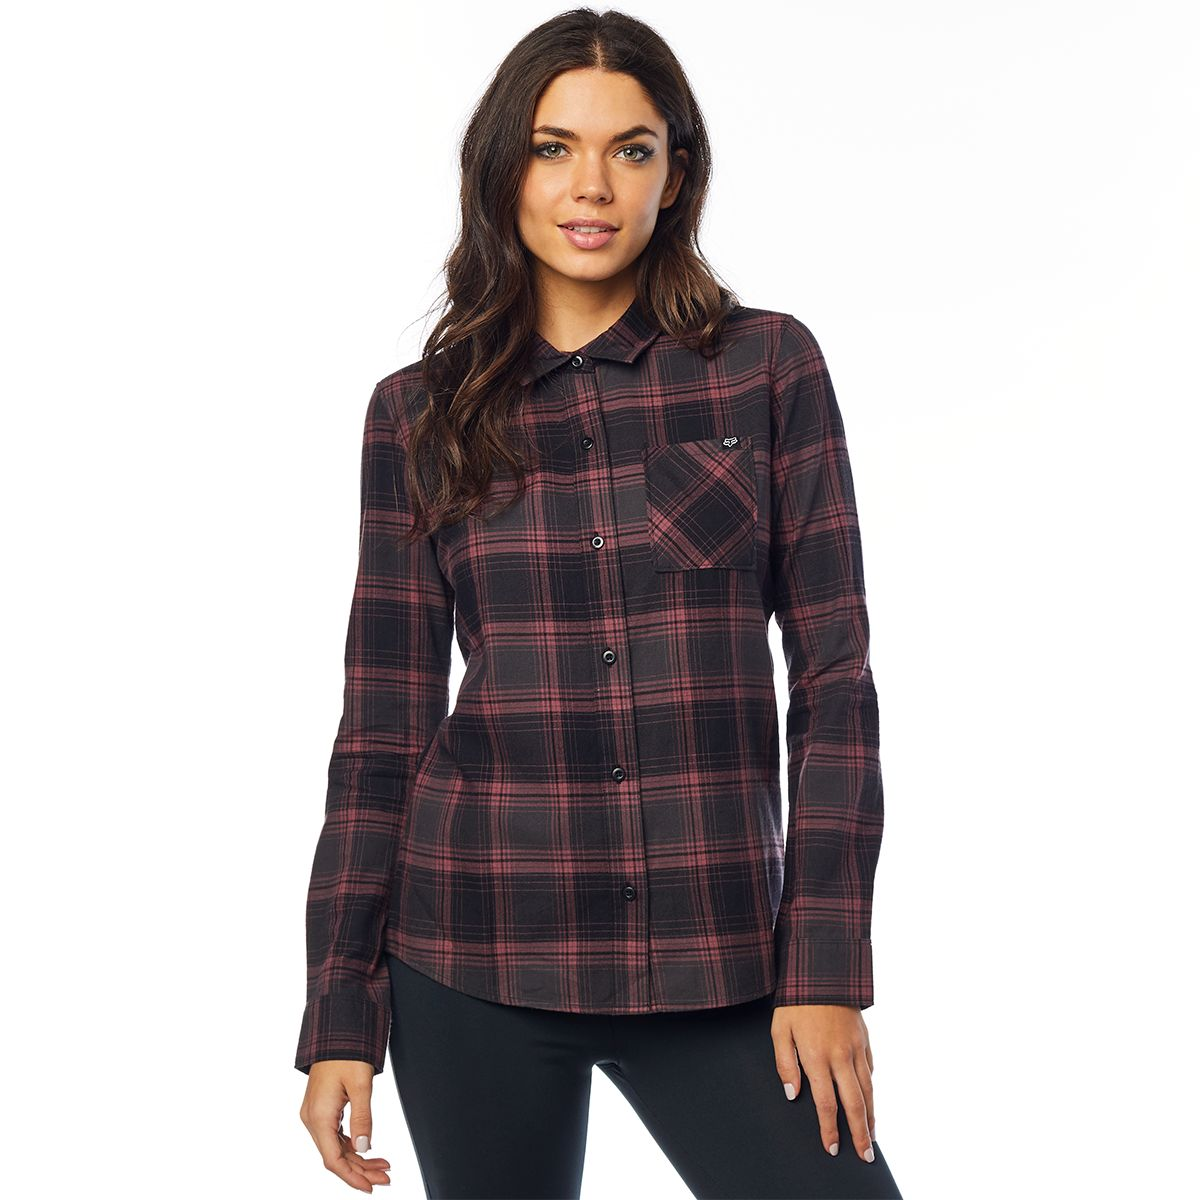 KICK IT LS FLANNEL women's shirt